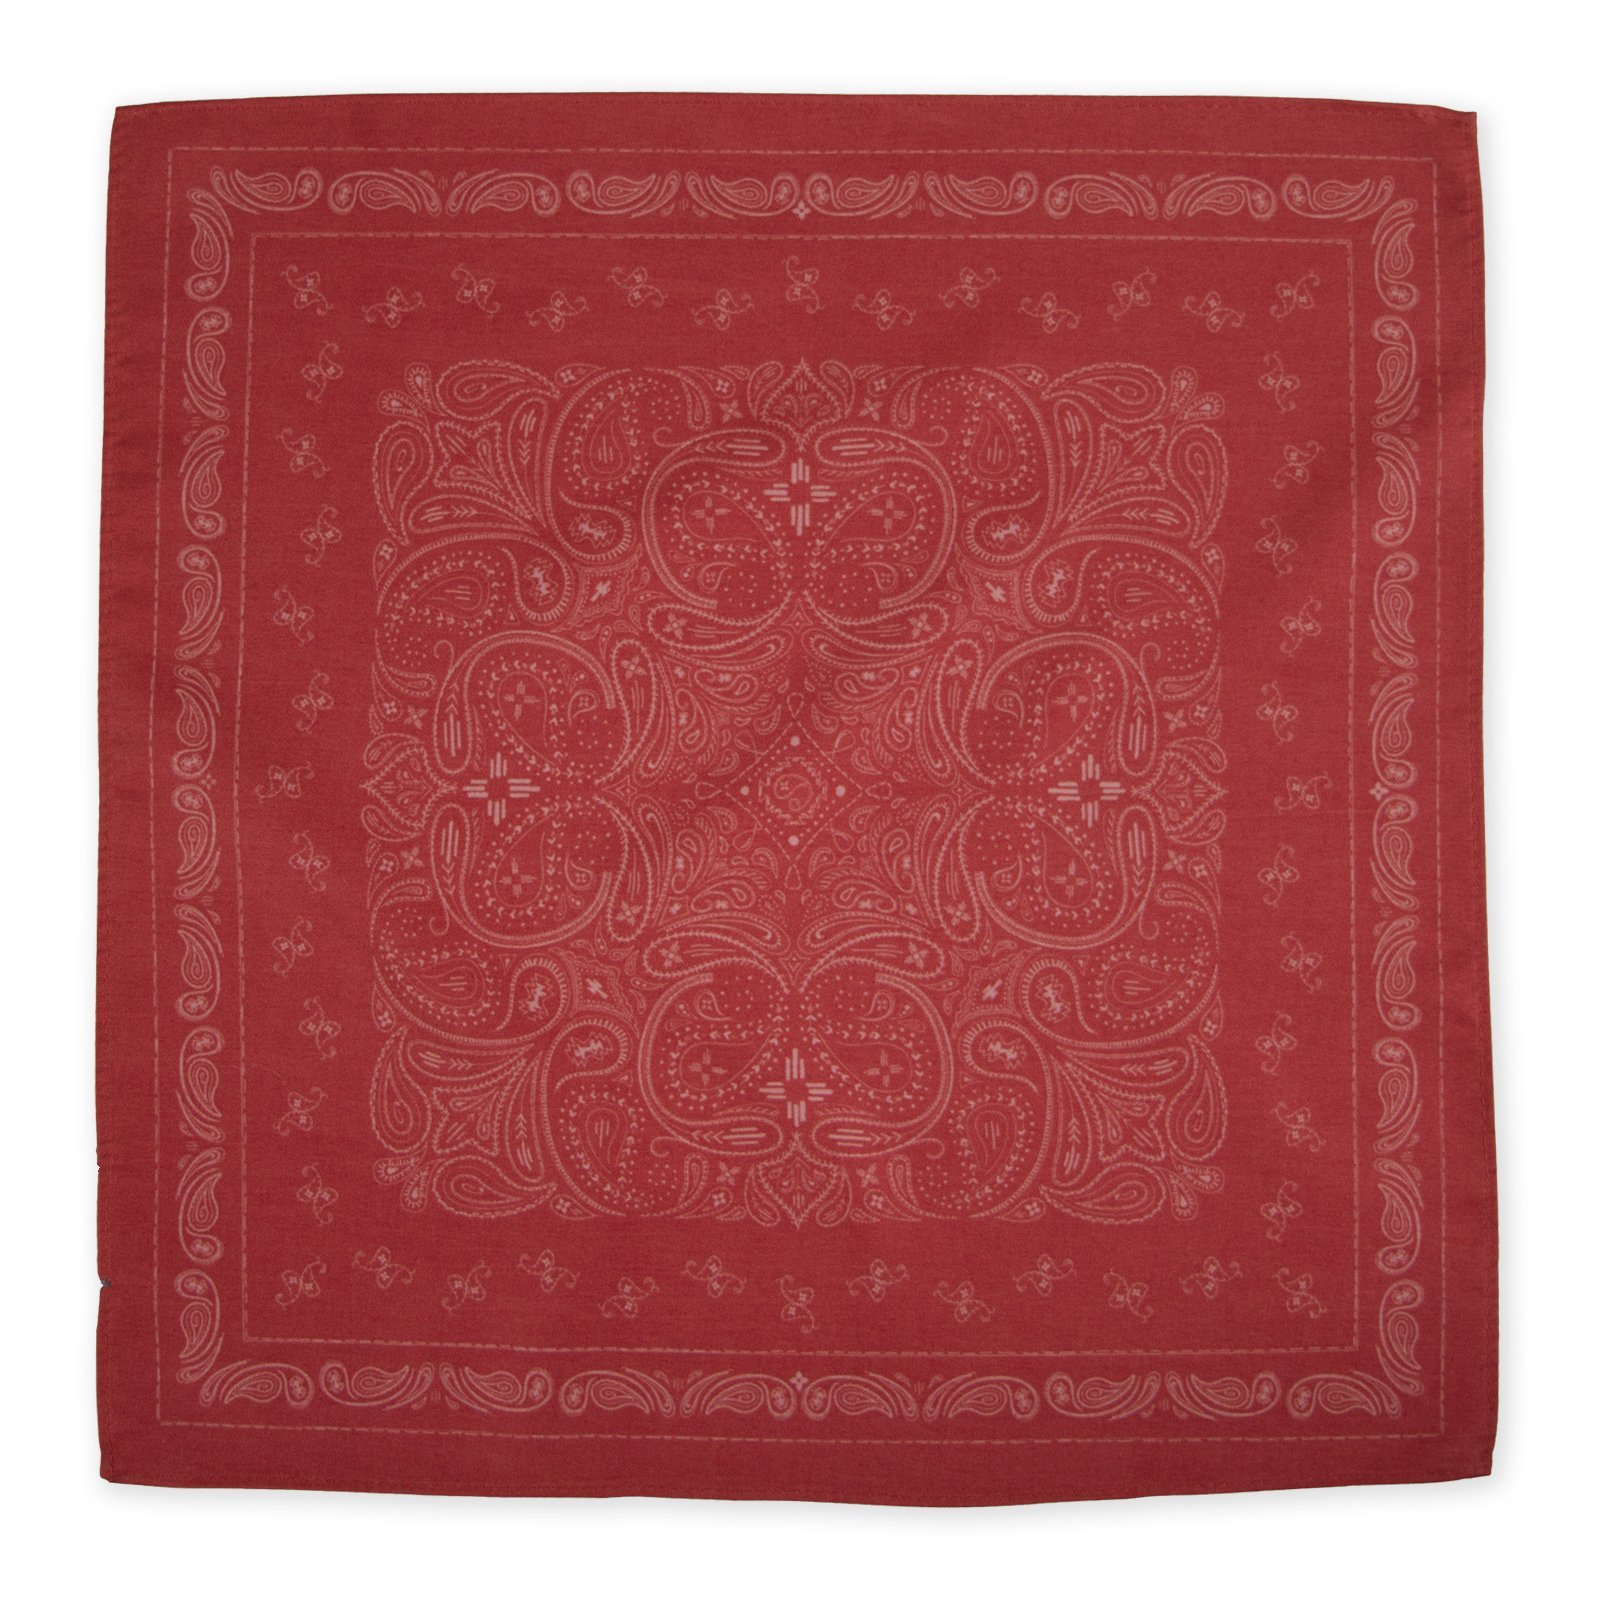 Declan 13.4 Inch Microfiber Pocket Square, Handkerchief, Cleaning Cloth (Brooks Red) by Declan